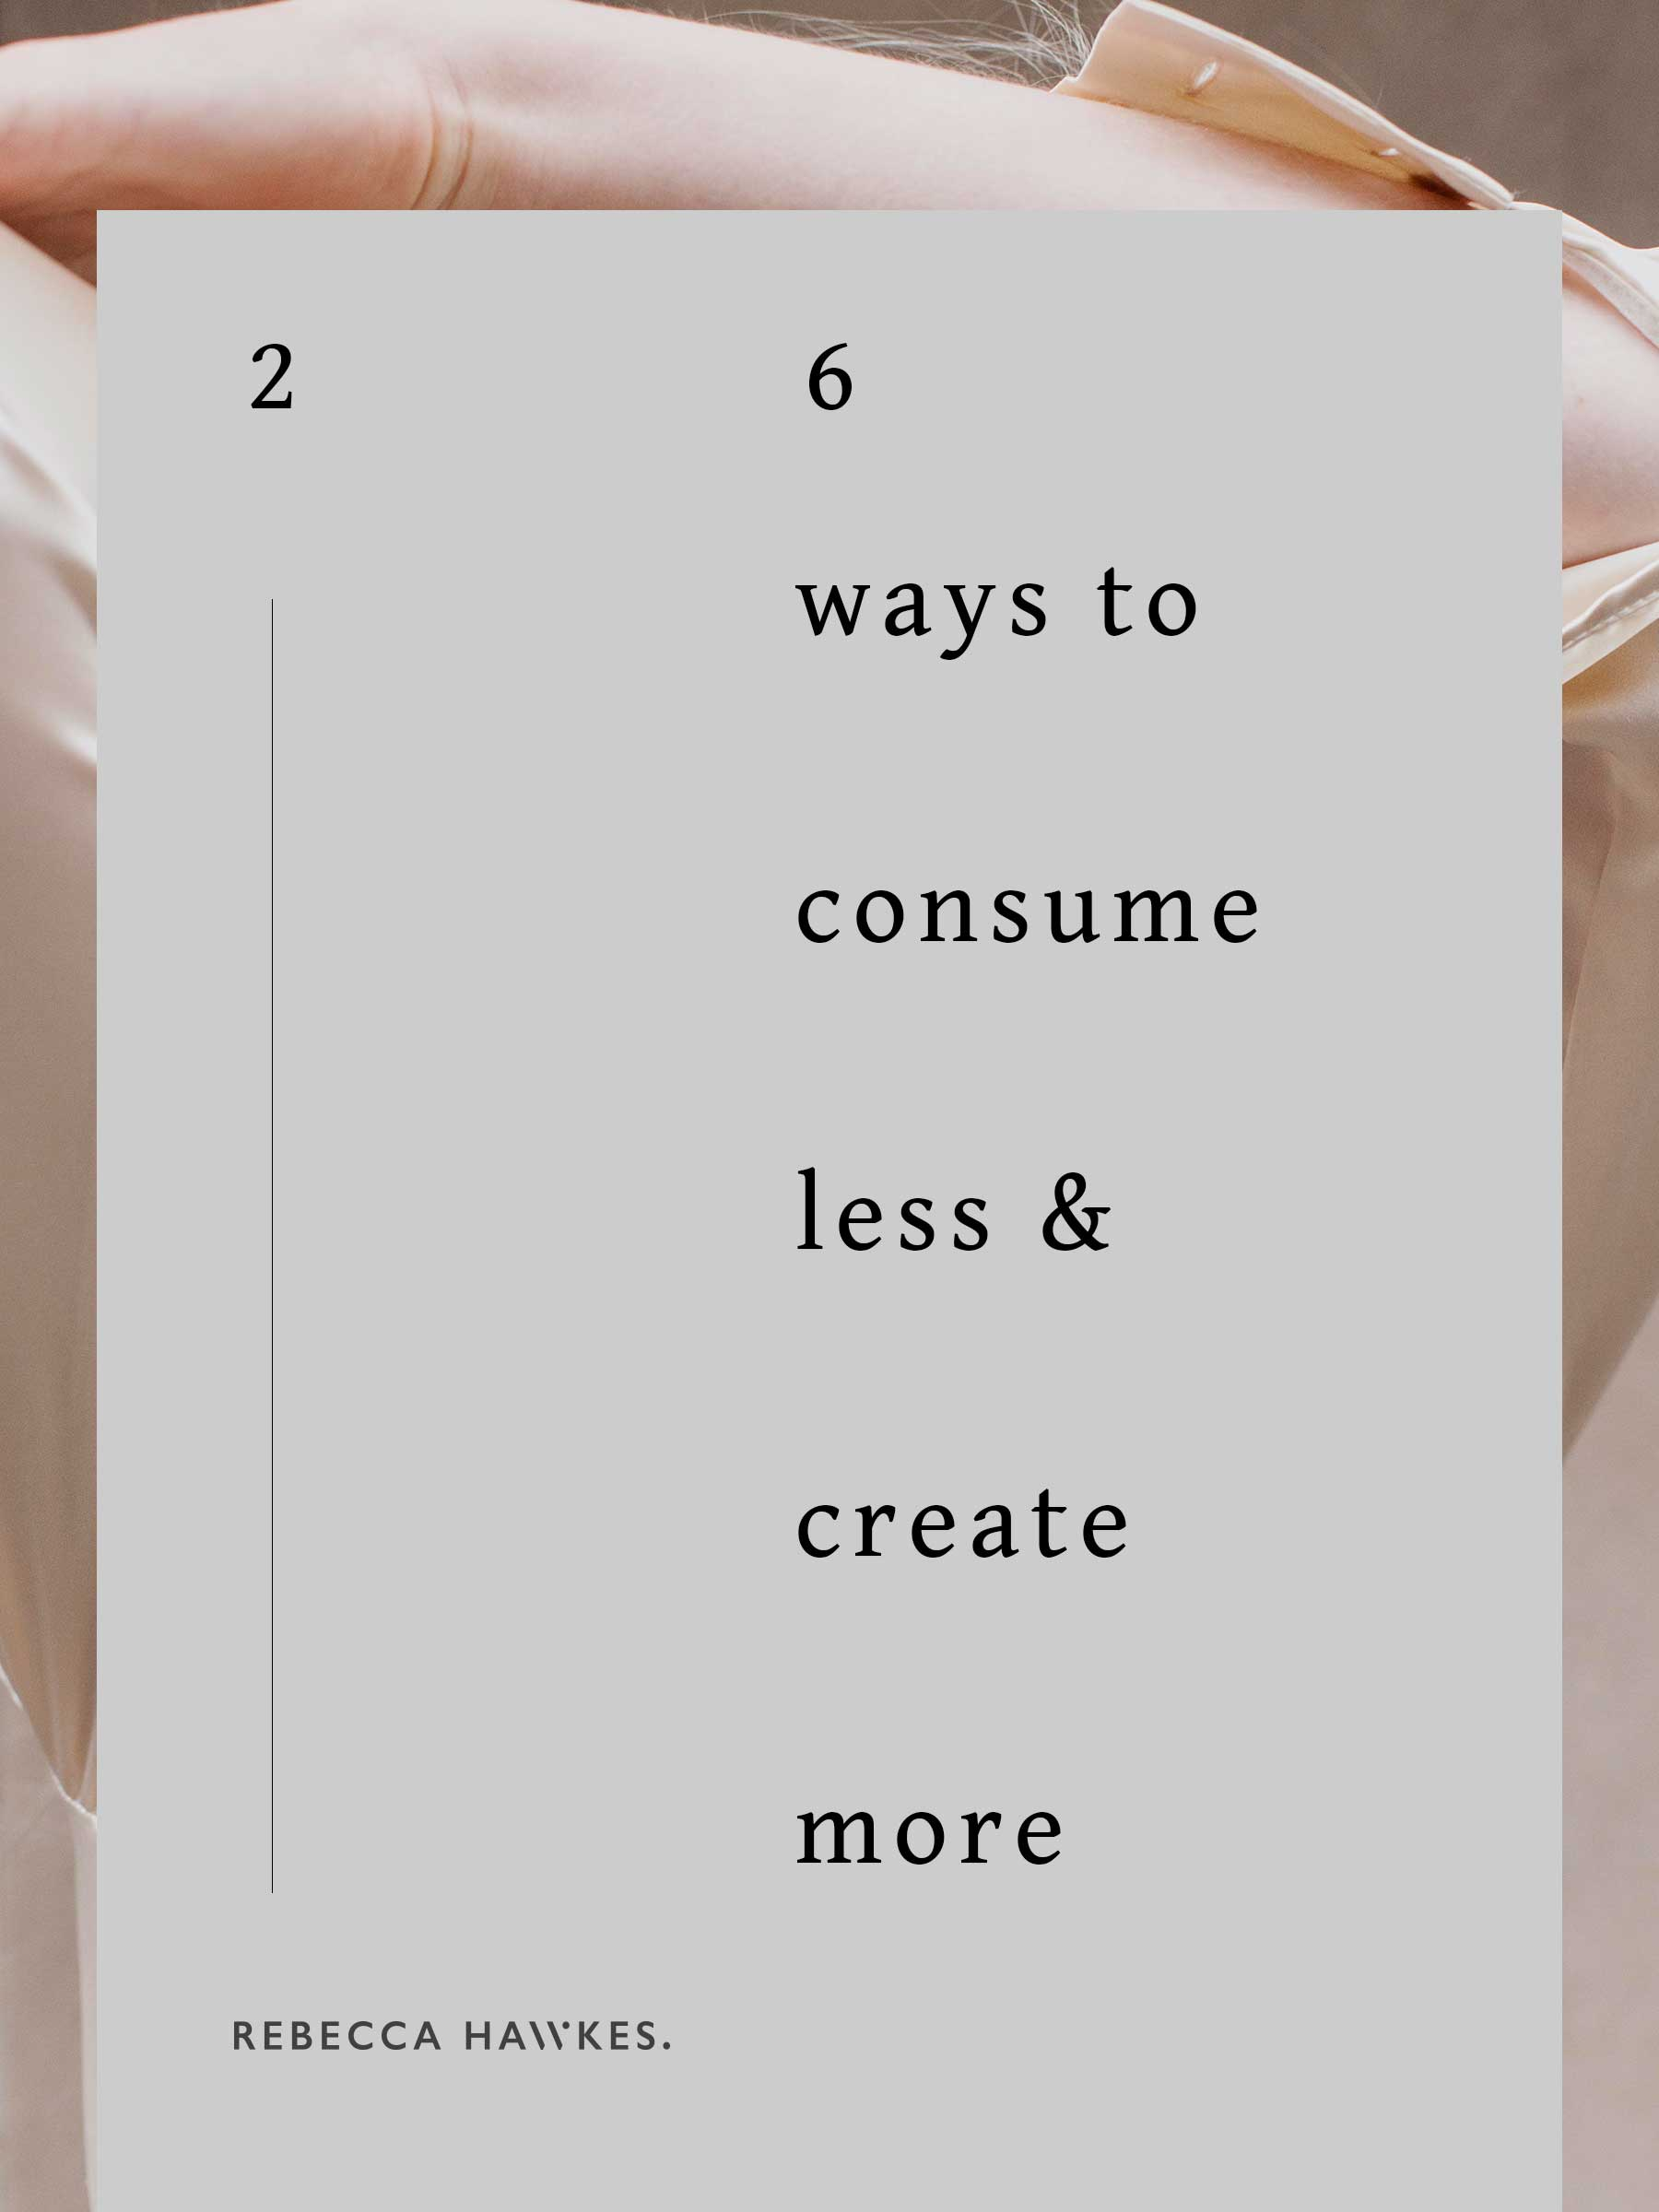 26 ways to consume less & create more | Rebecca Hawkes